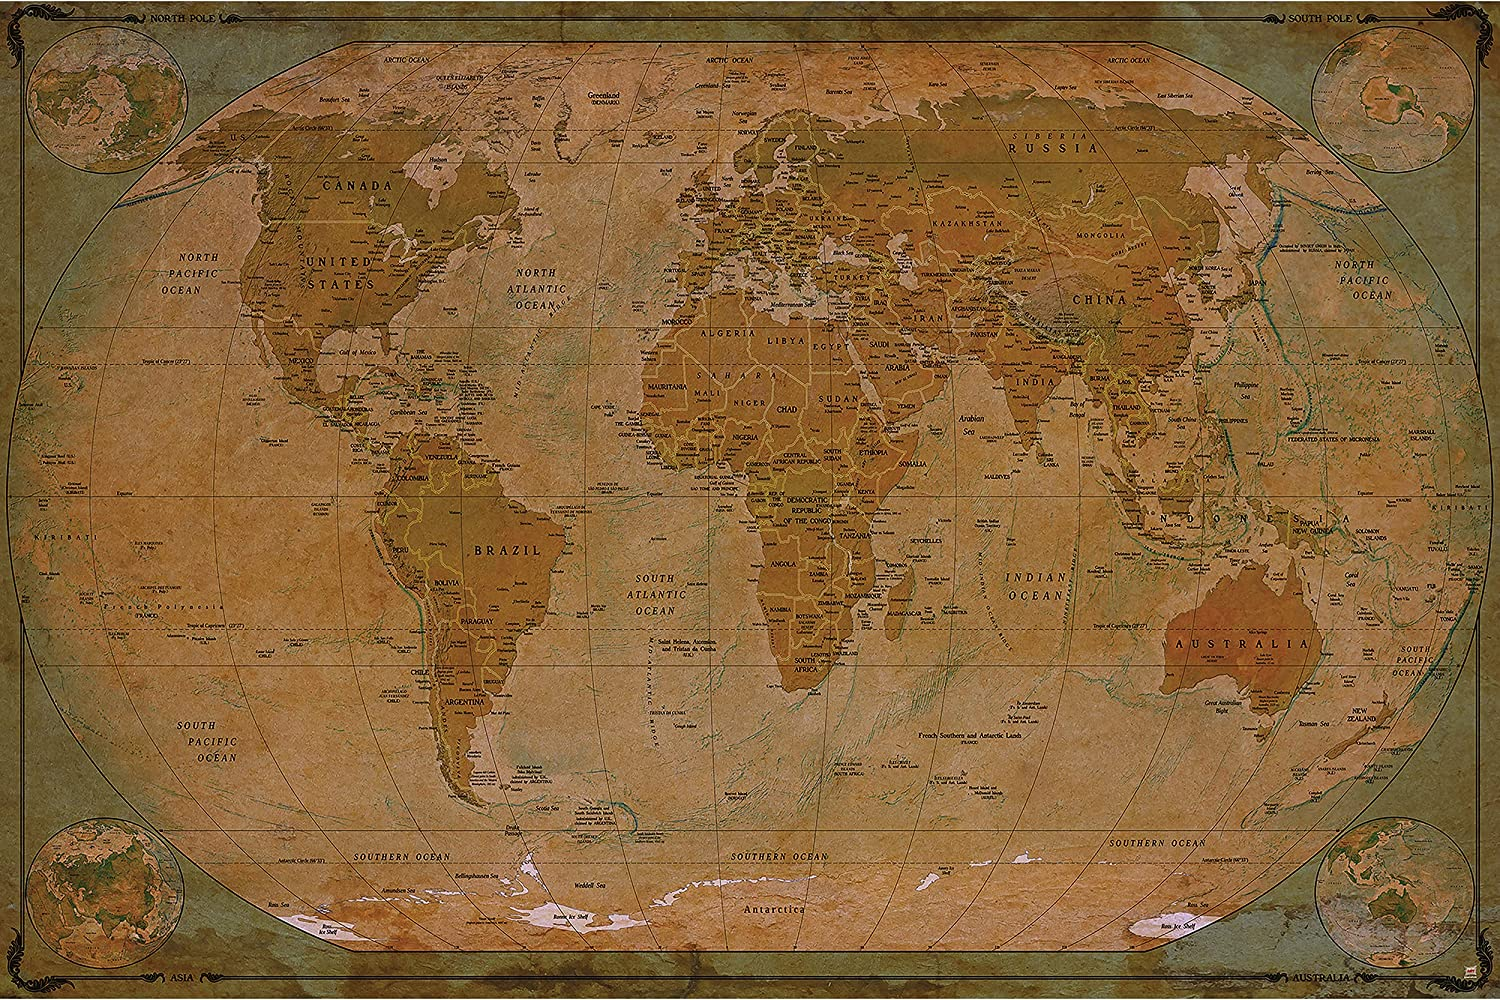 Amazon Com Large Photo Wallpaper Historical World Map Picture Decoration Globe Antique Vintage World Map Used Sepia Atlas Map Old School Image Decor Wall Mural 132 3x93 7in 336x238cm Tools